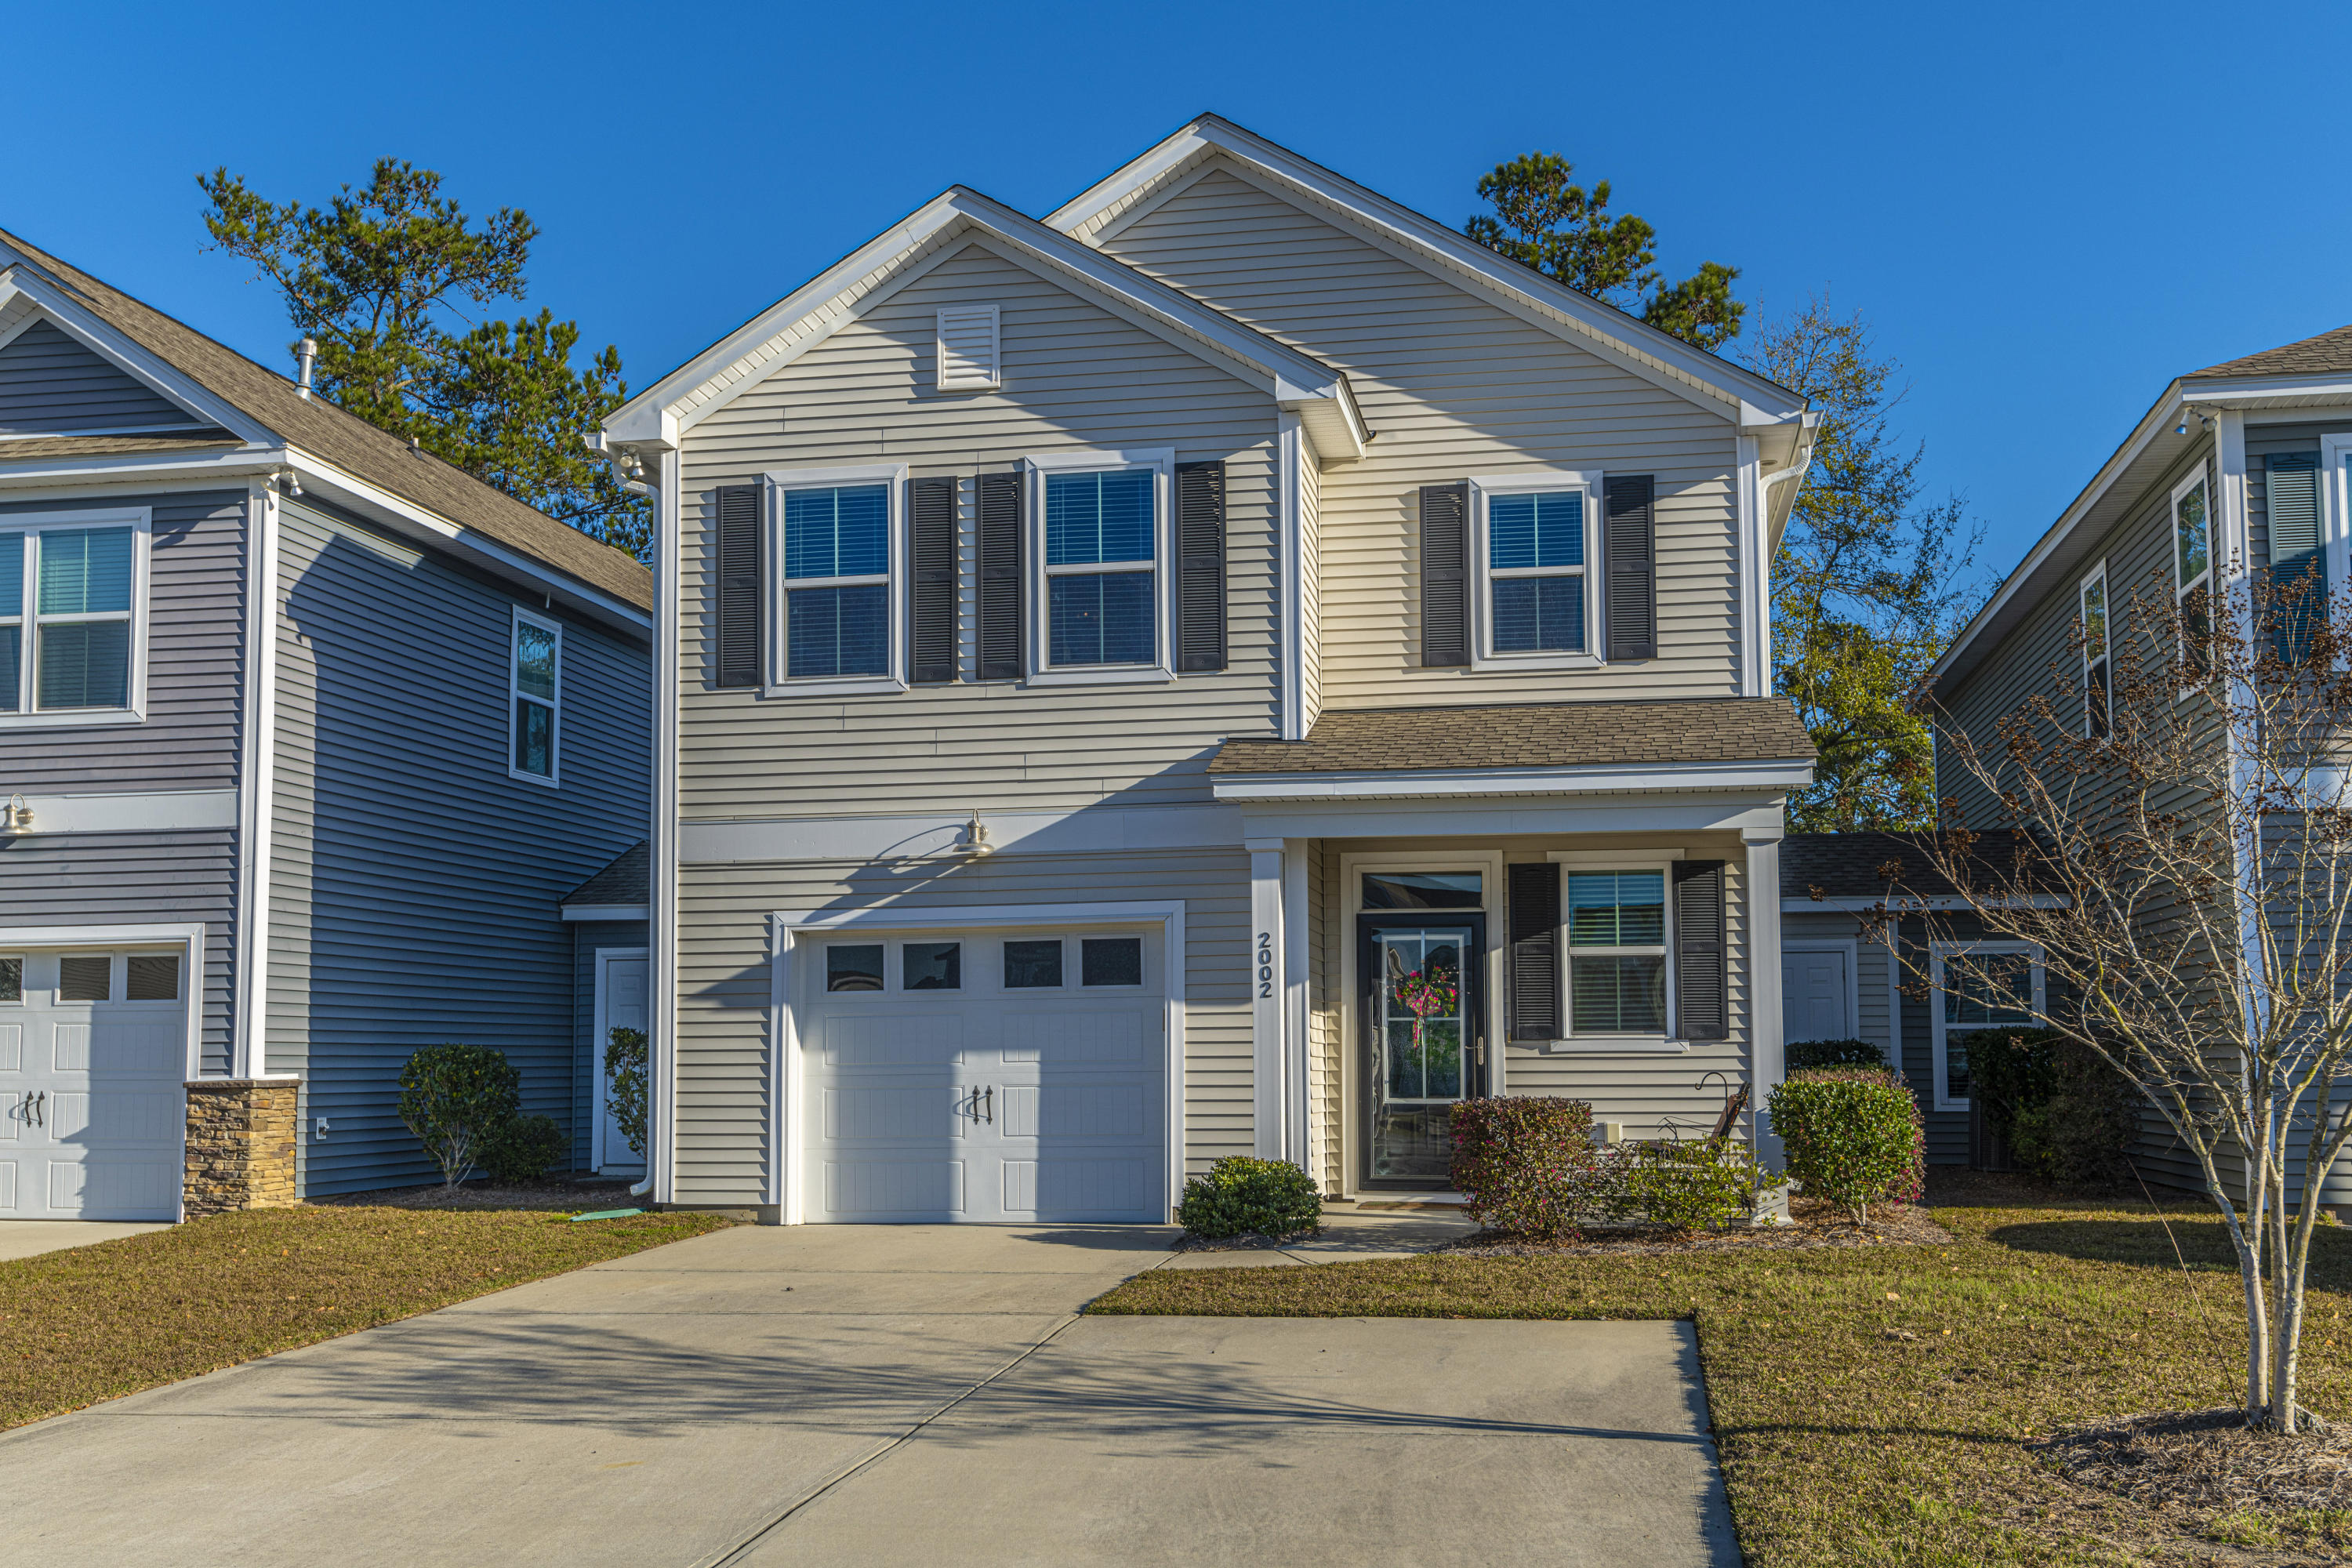 2002 Poplar Grove Place Summerville, Sc 29483